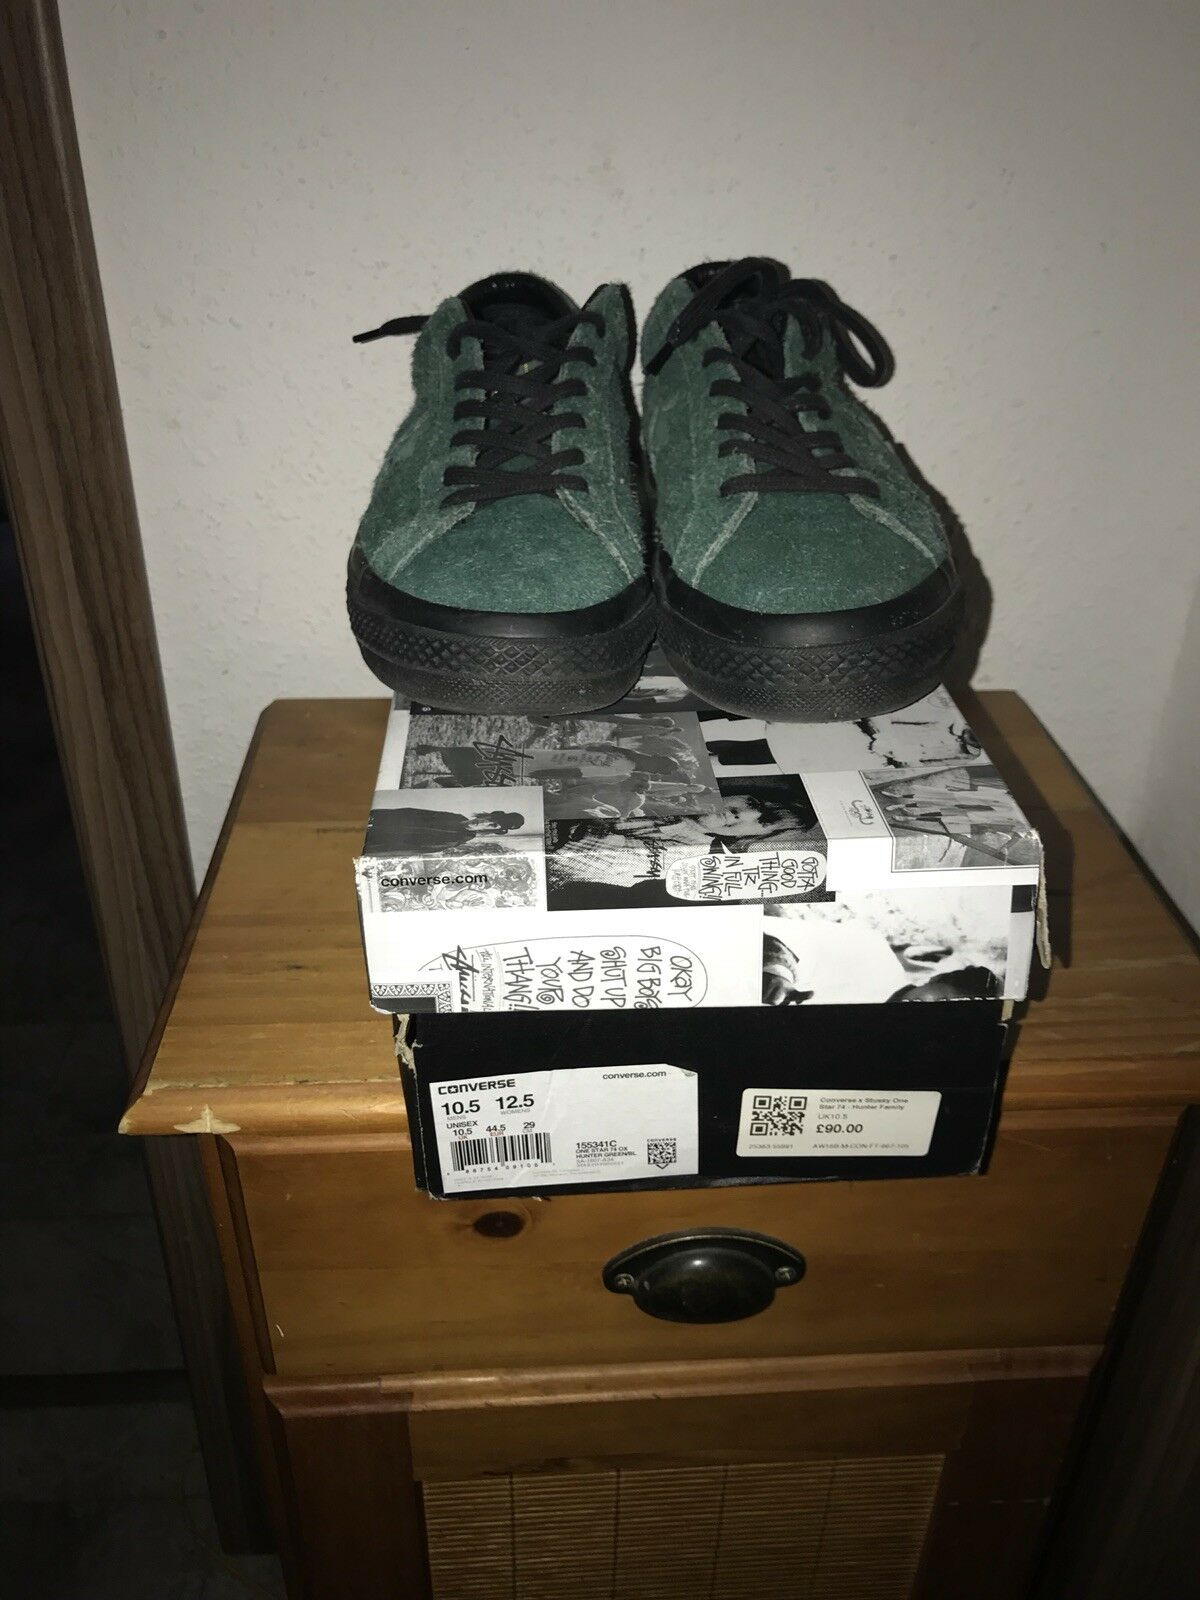 Converse x stussy One Star EU44.5 US10.5 UK10.5